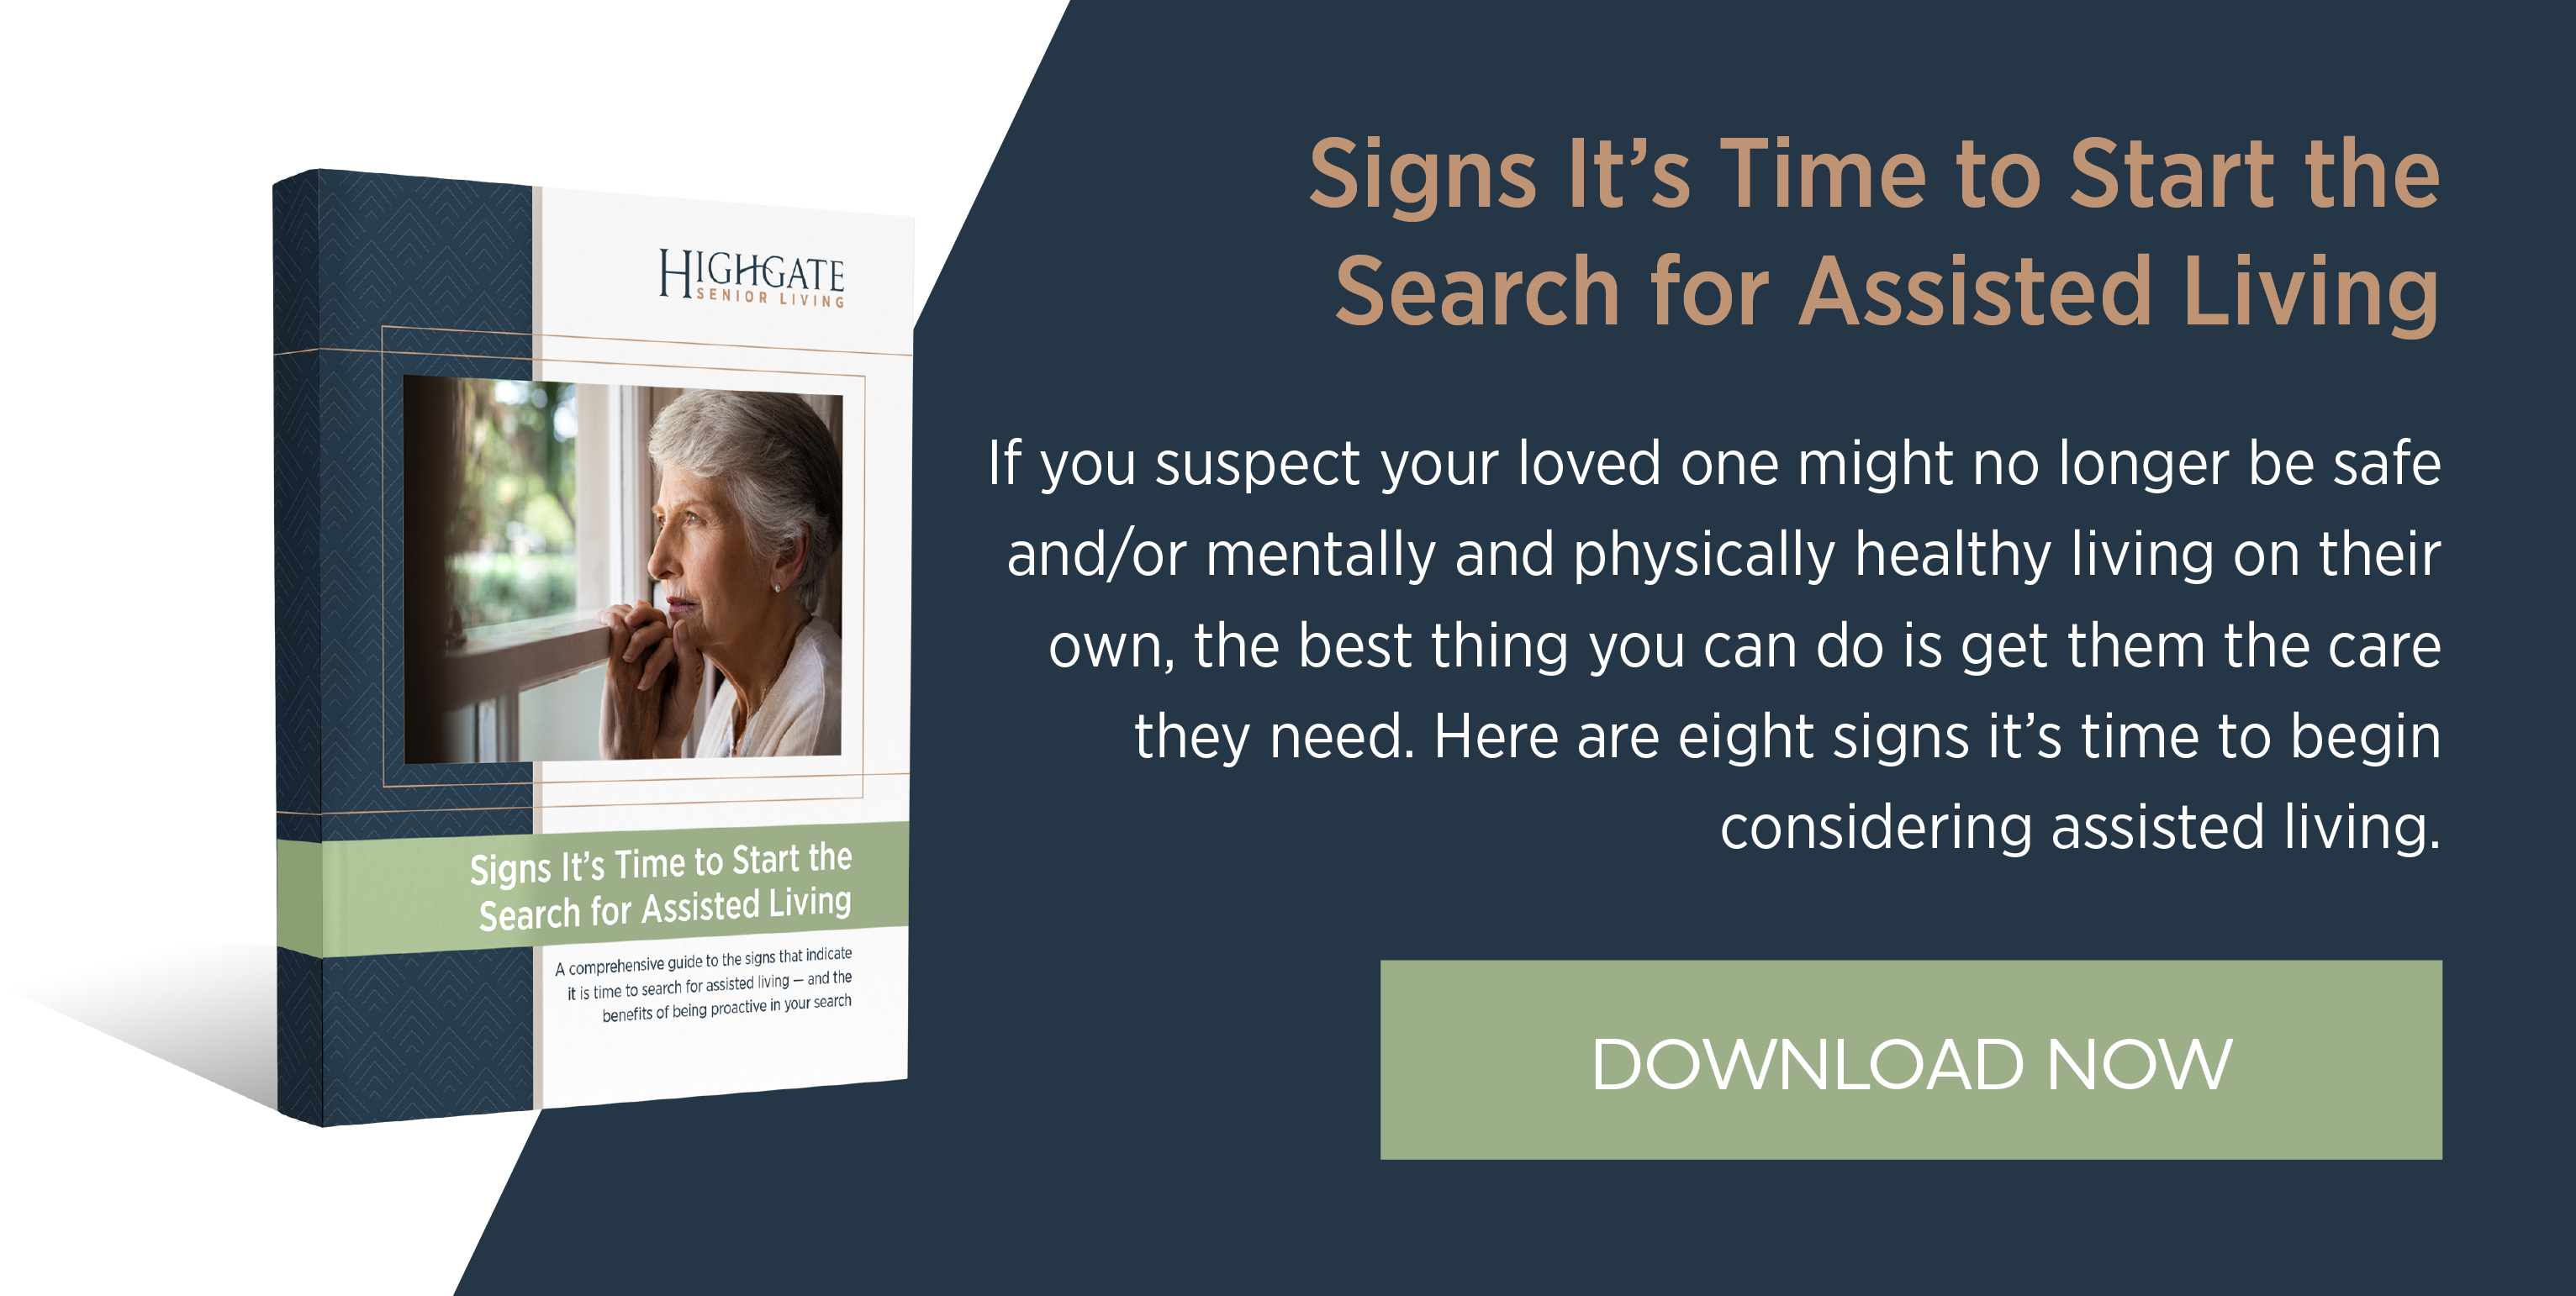 Signs It's Time to Consider Assisted Living